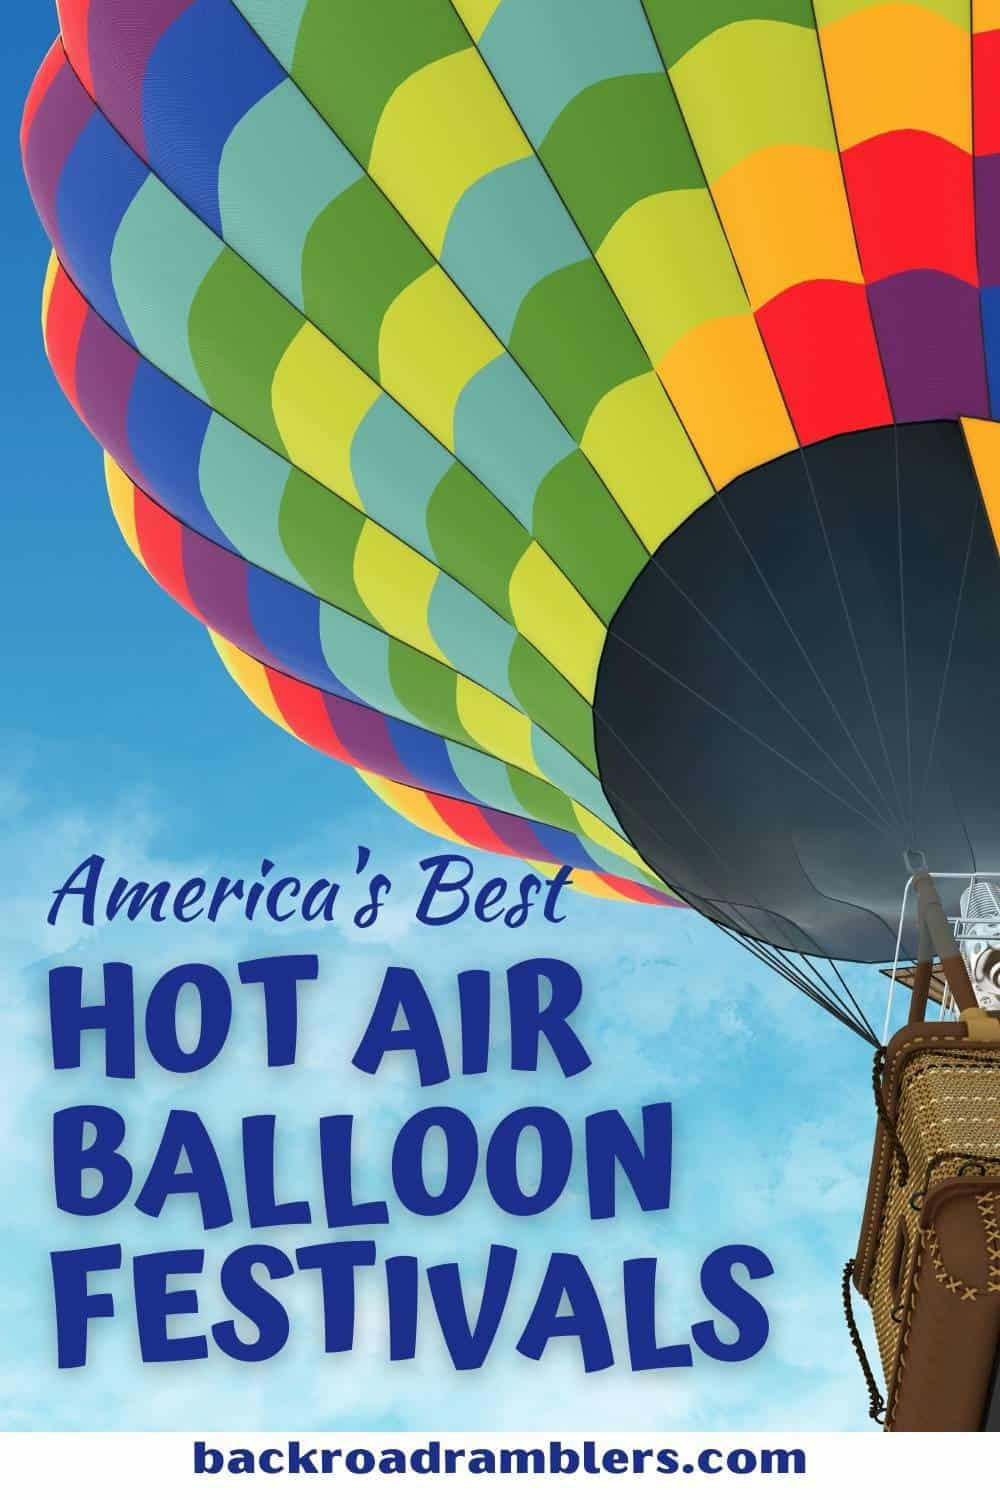 A colorful photo of a hot air balloon. Text overlay: America's Best Hot Air Balloon Festivals